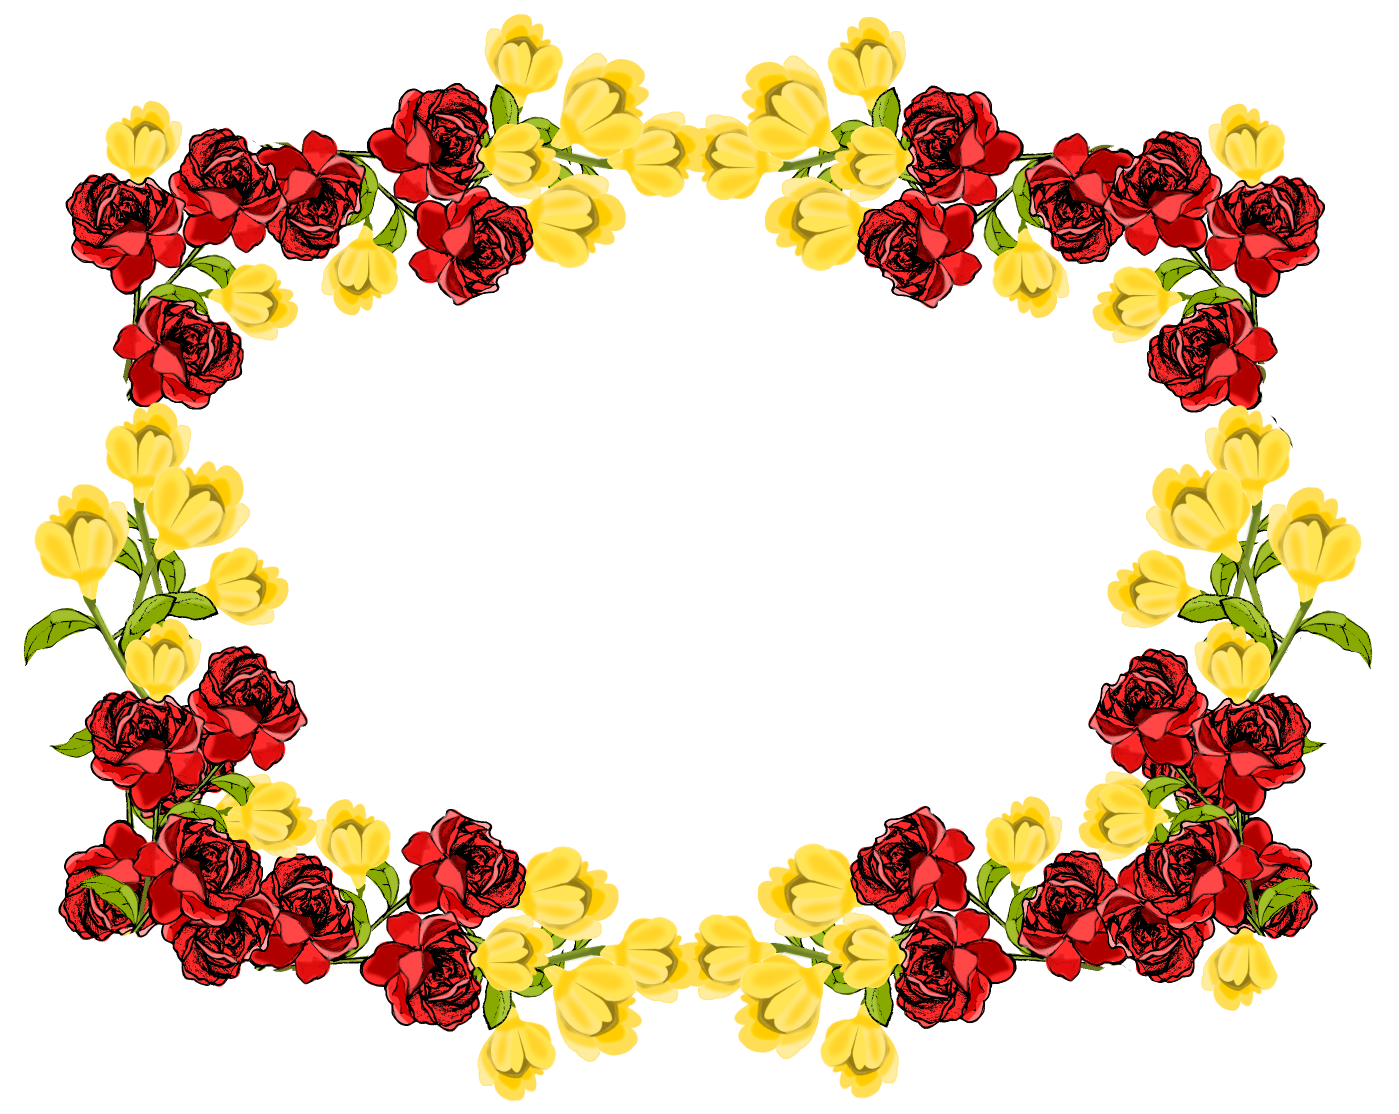 Yellow flower border clipart clip art free download Red And Yellow Flower Frame Png - 5611 - TransparentPNG clip art free download